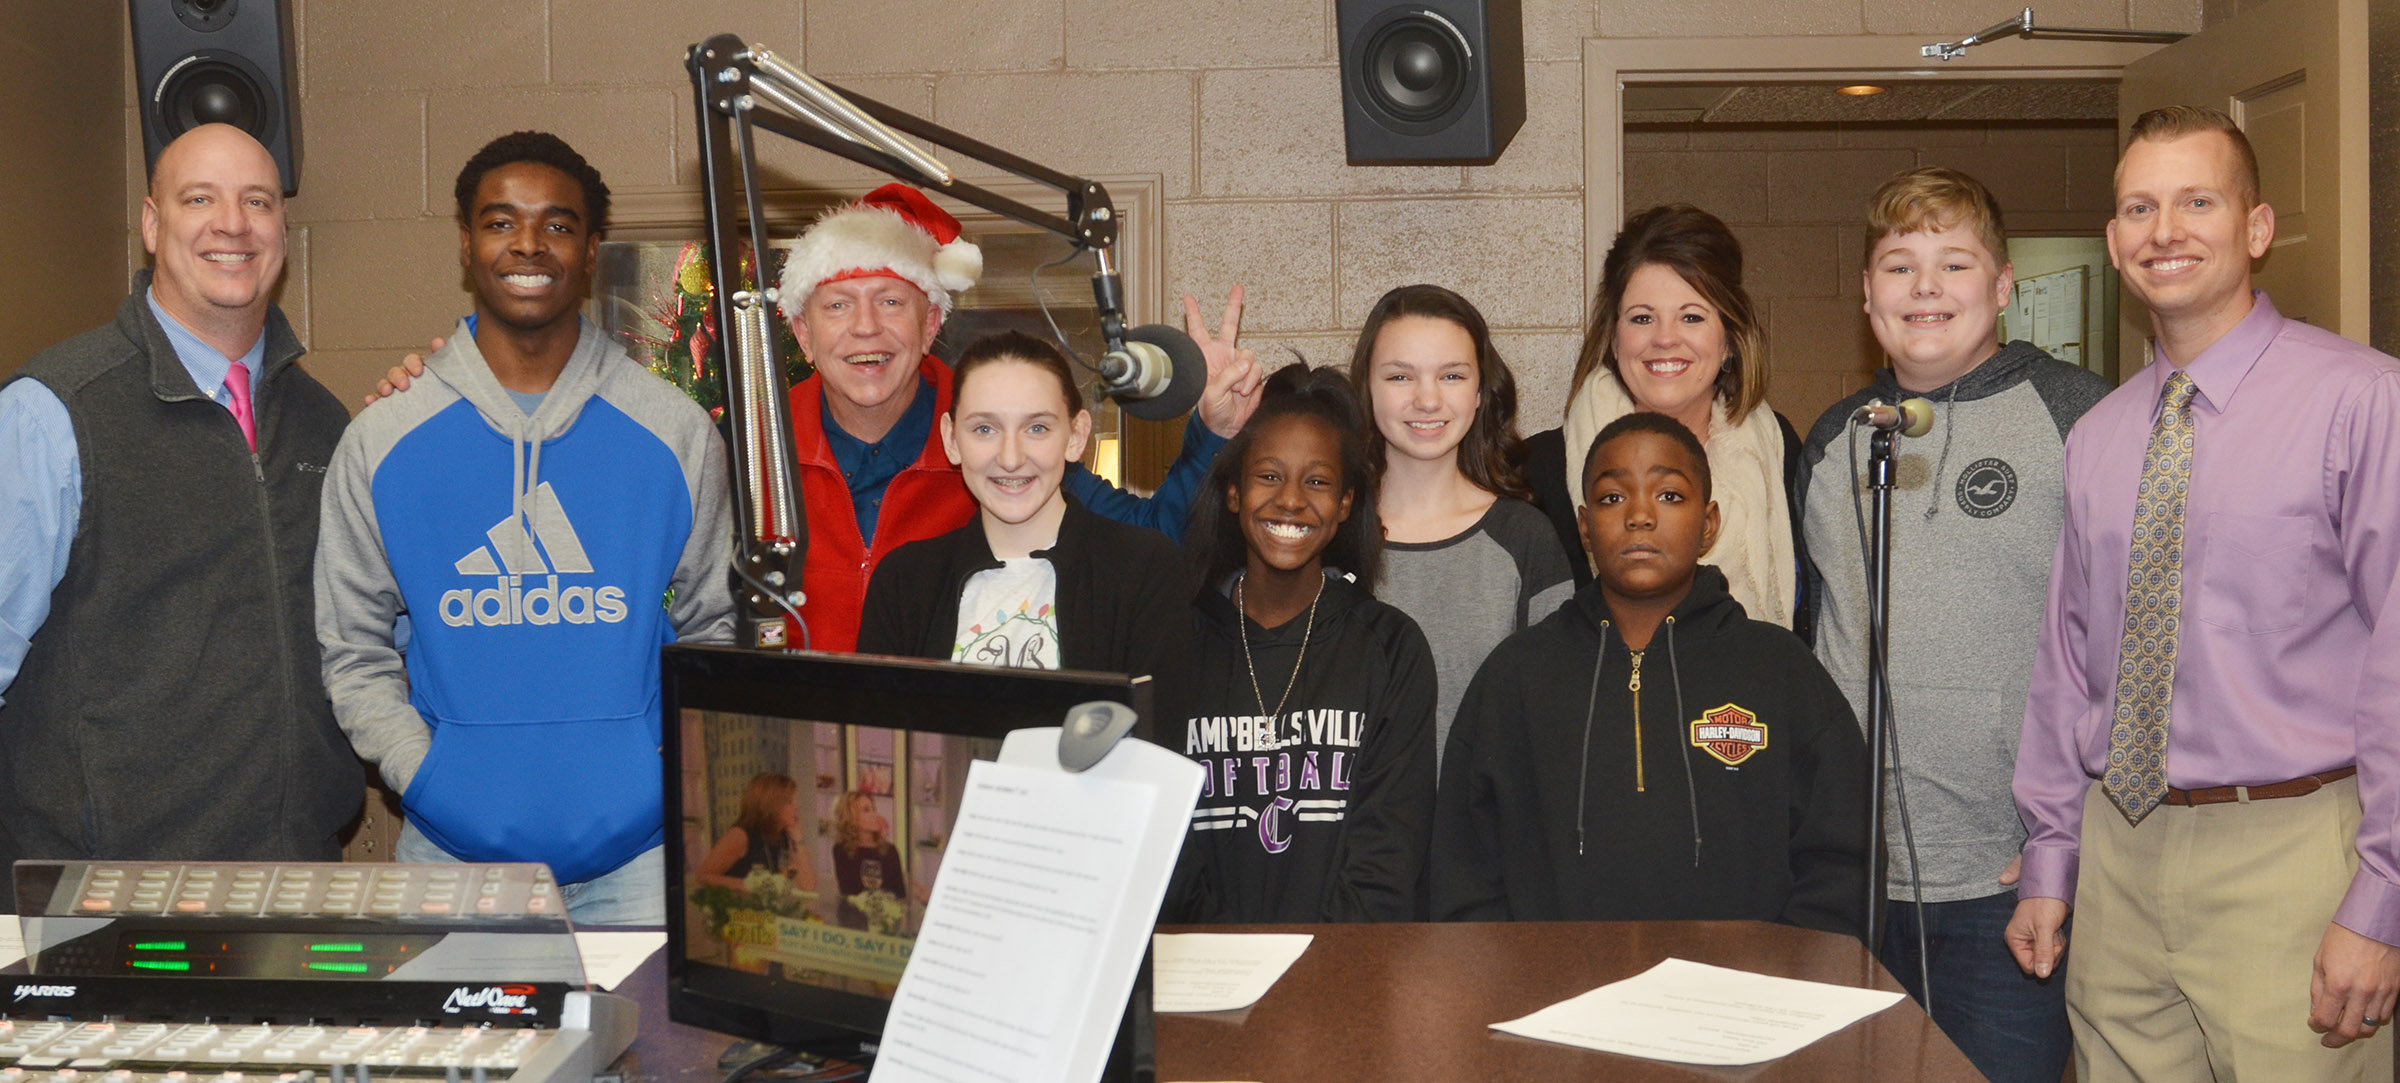 Campbellsville Independent Schools' principals and students recently helped Q-104 raise money for the community's Toys for Tots fundraiser. From left are CHS Principal David Petett, CHS senior Chanson Atkinson, Q-104 radio personality Rob Collins, CHS sophomore Zoe McAninch, Campbellsville Middle School eighth-graders Myricle Gholston and Karley Morris, Campbellsville Elementary School fifth-grader Deason Smith, CES Principal Elisha Rhodes, CMS eighth-grader Blake Settle and CMS Principal Zach Lewis.